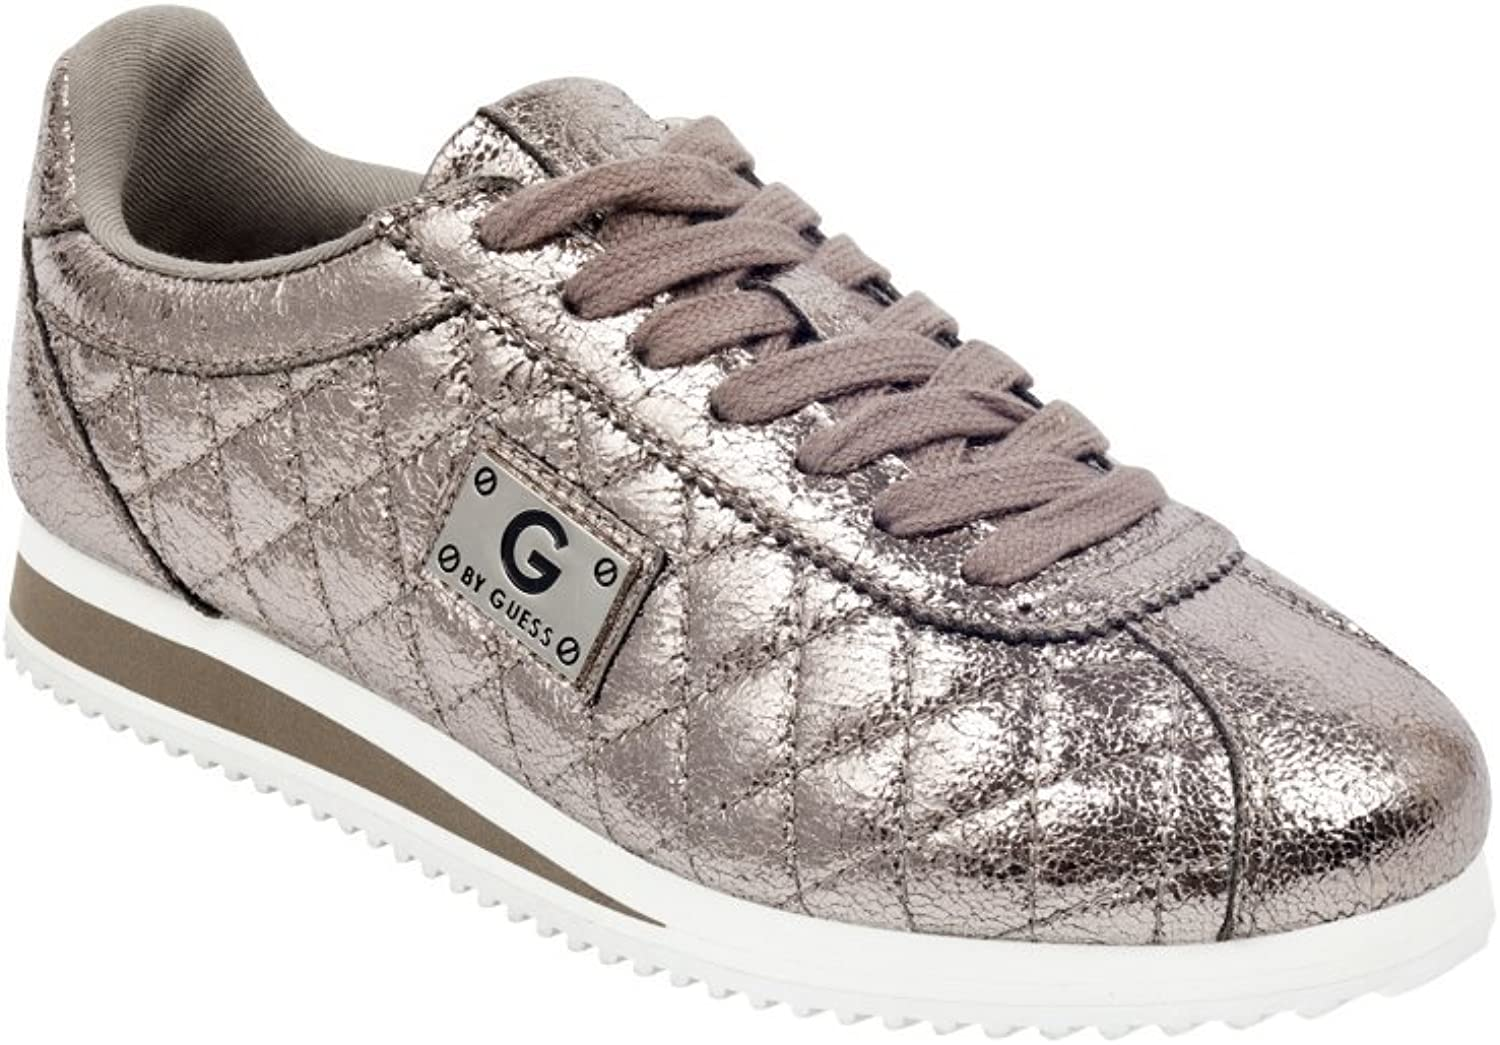 G by Guess Women's Romio Metallic Quilted Sneakers